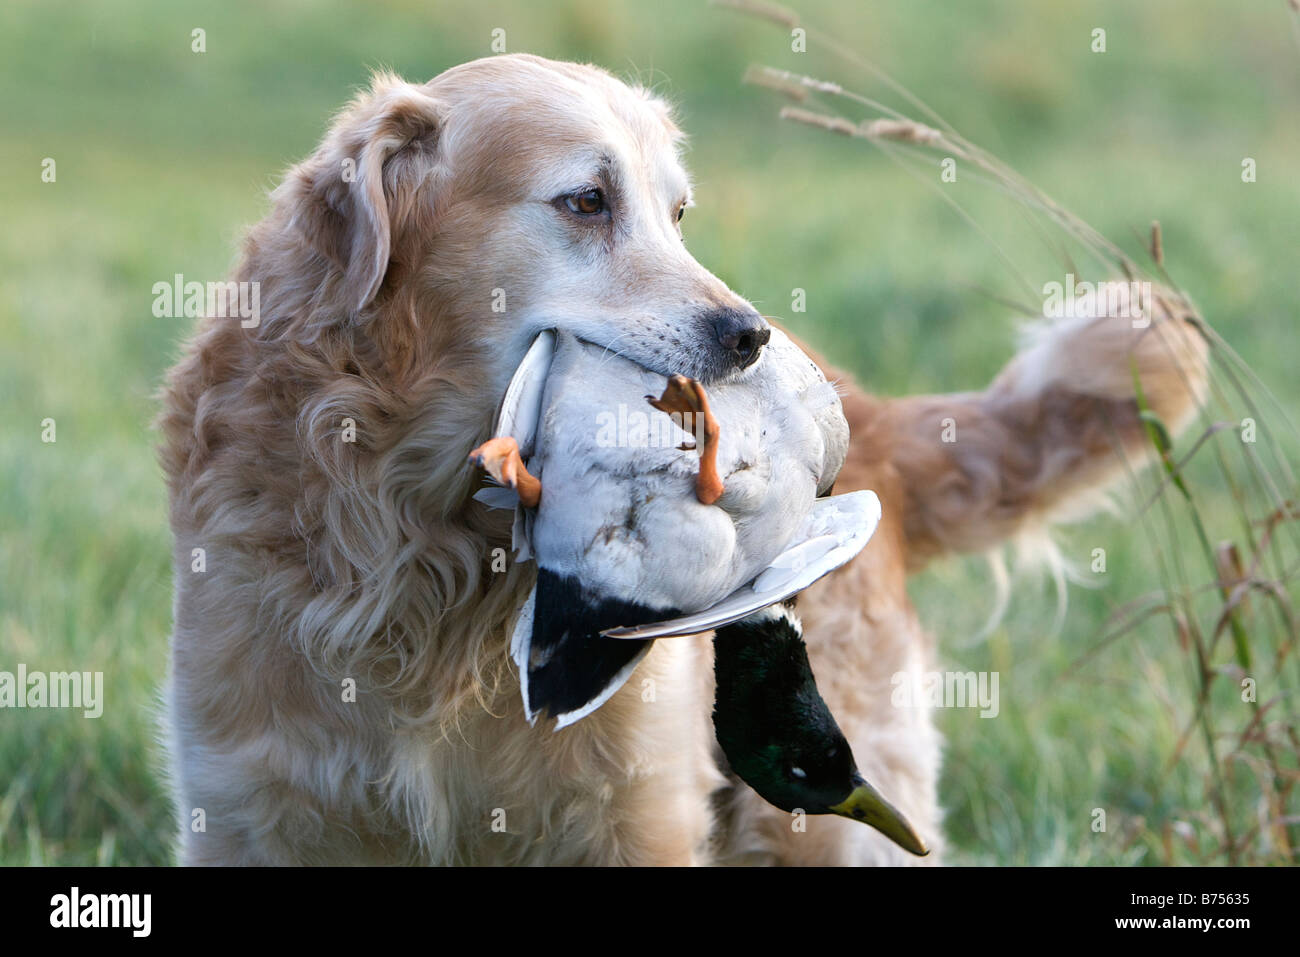 A Golden Retriever retrieves a duck during a game shoot - Stock Image